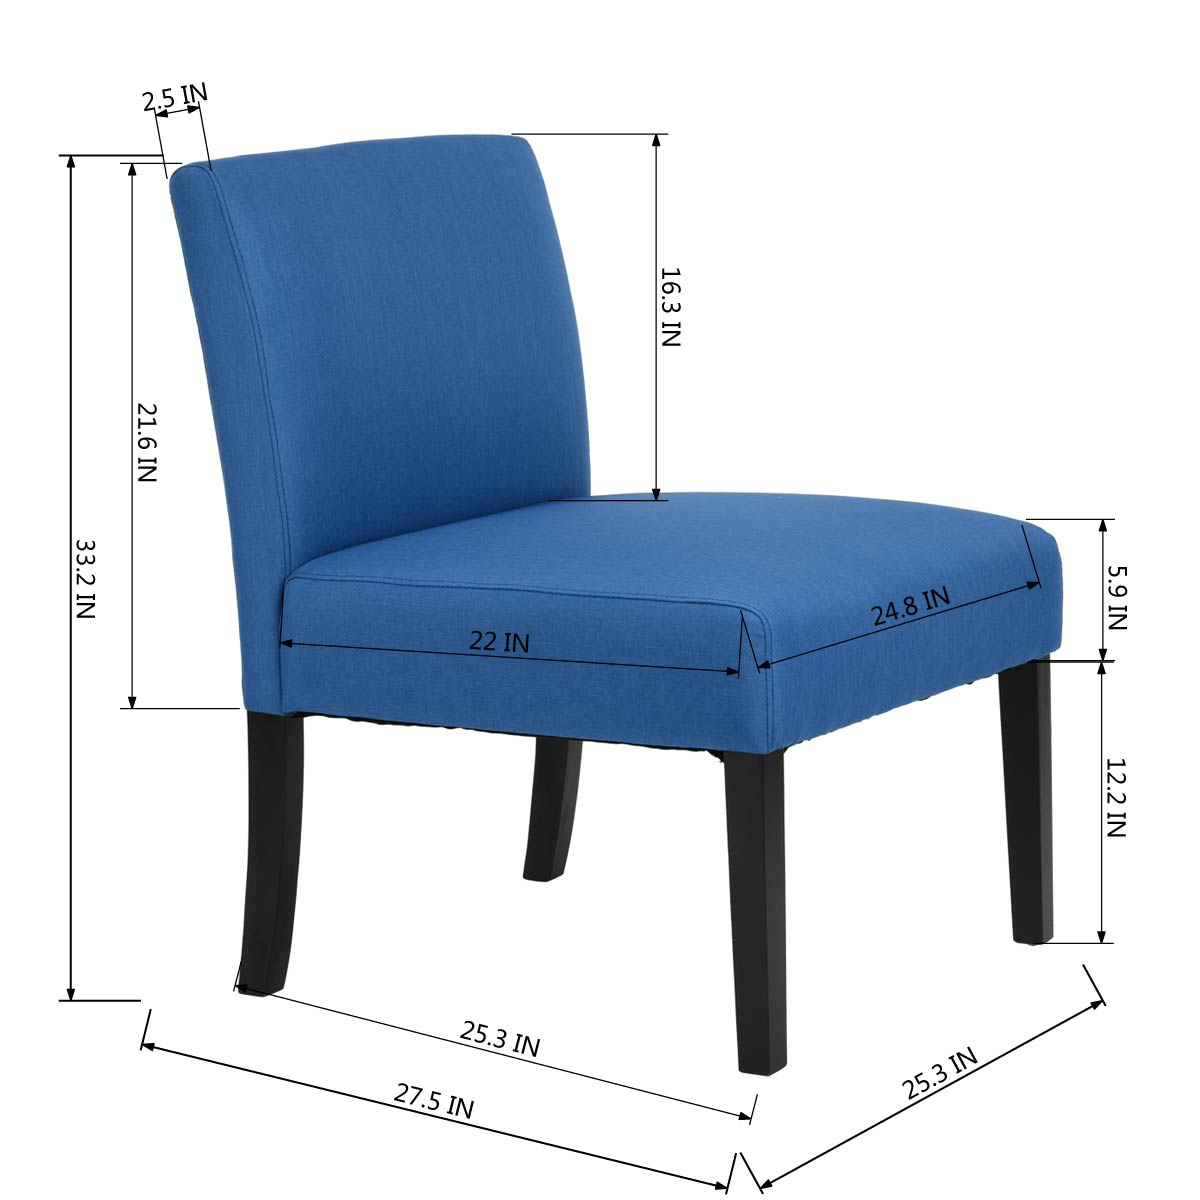 Astonishing Details About Single Side Chair Sofa Blue Fabric Cover Wooden Leg Modern Accent Home Furniture Machost Co Dining Chair Design Ideas Machostcouk